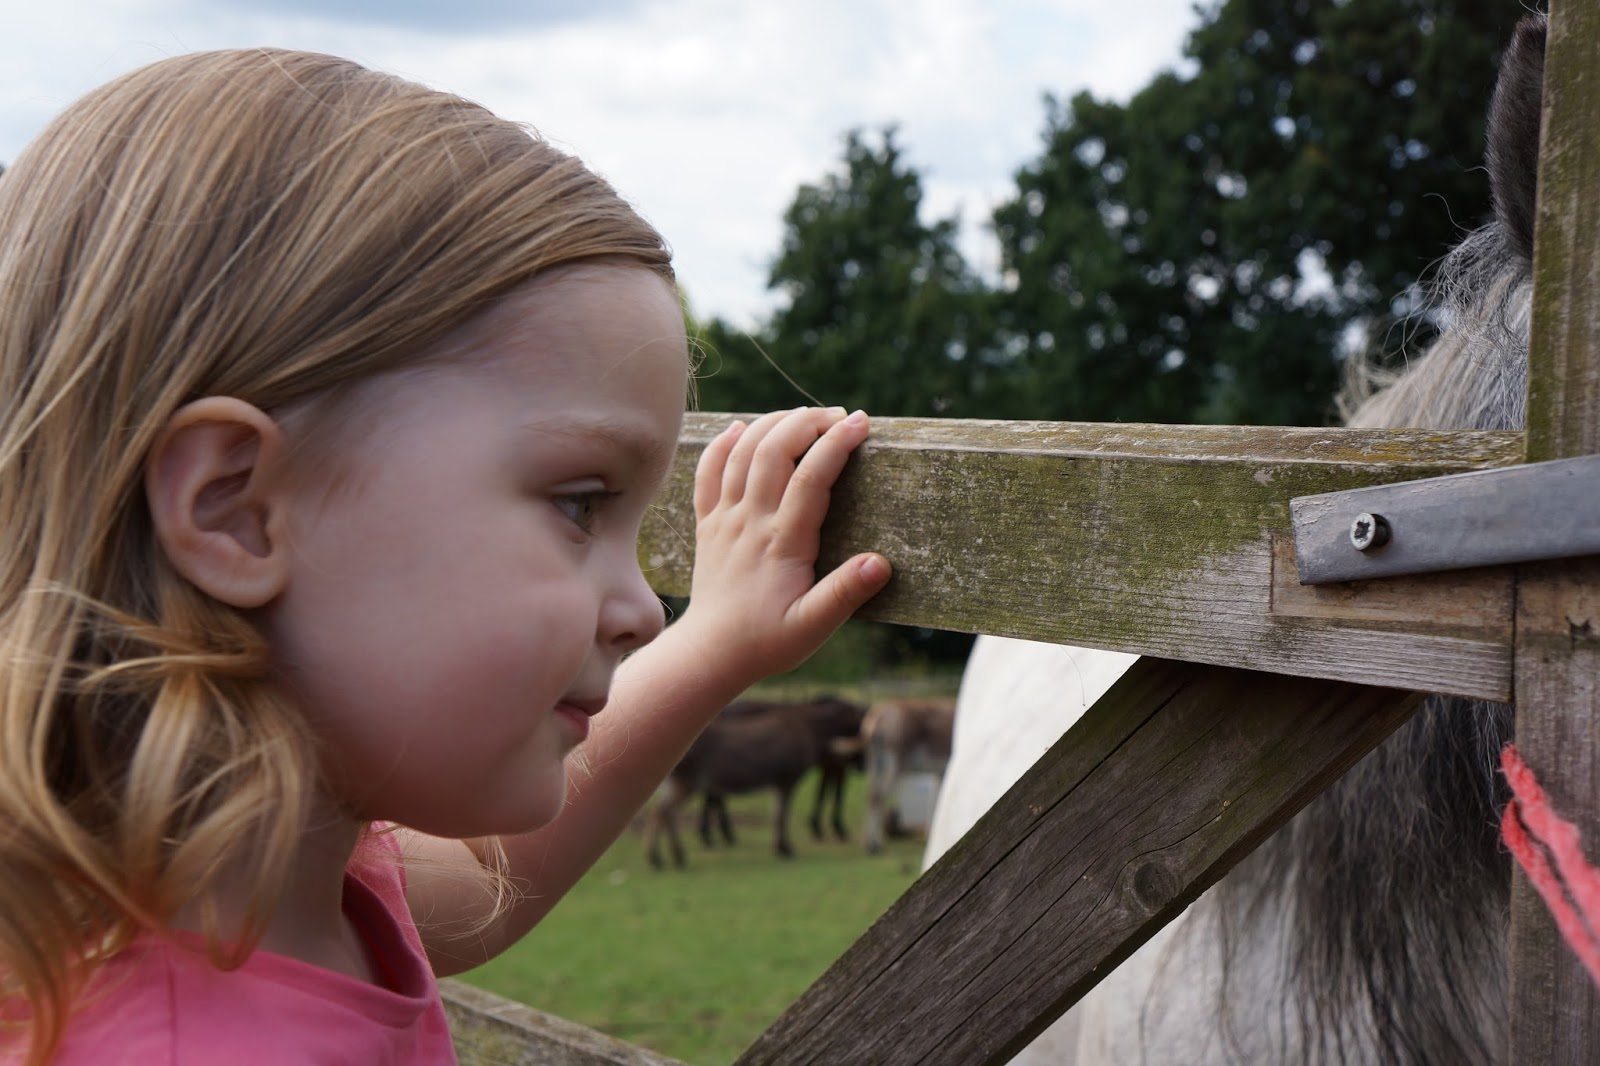 toddler looking at a horse in a pen